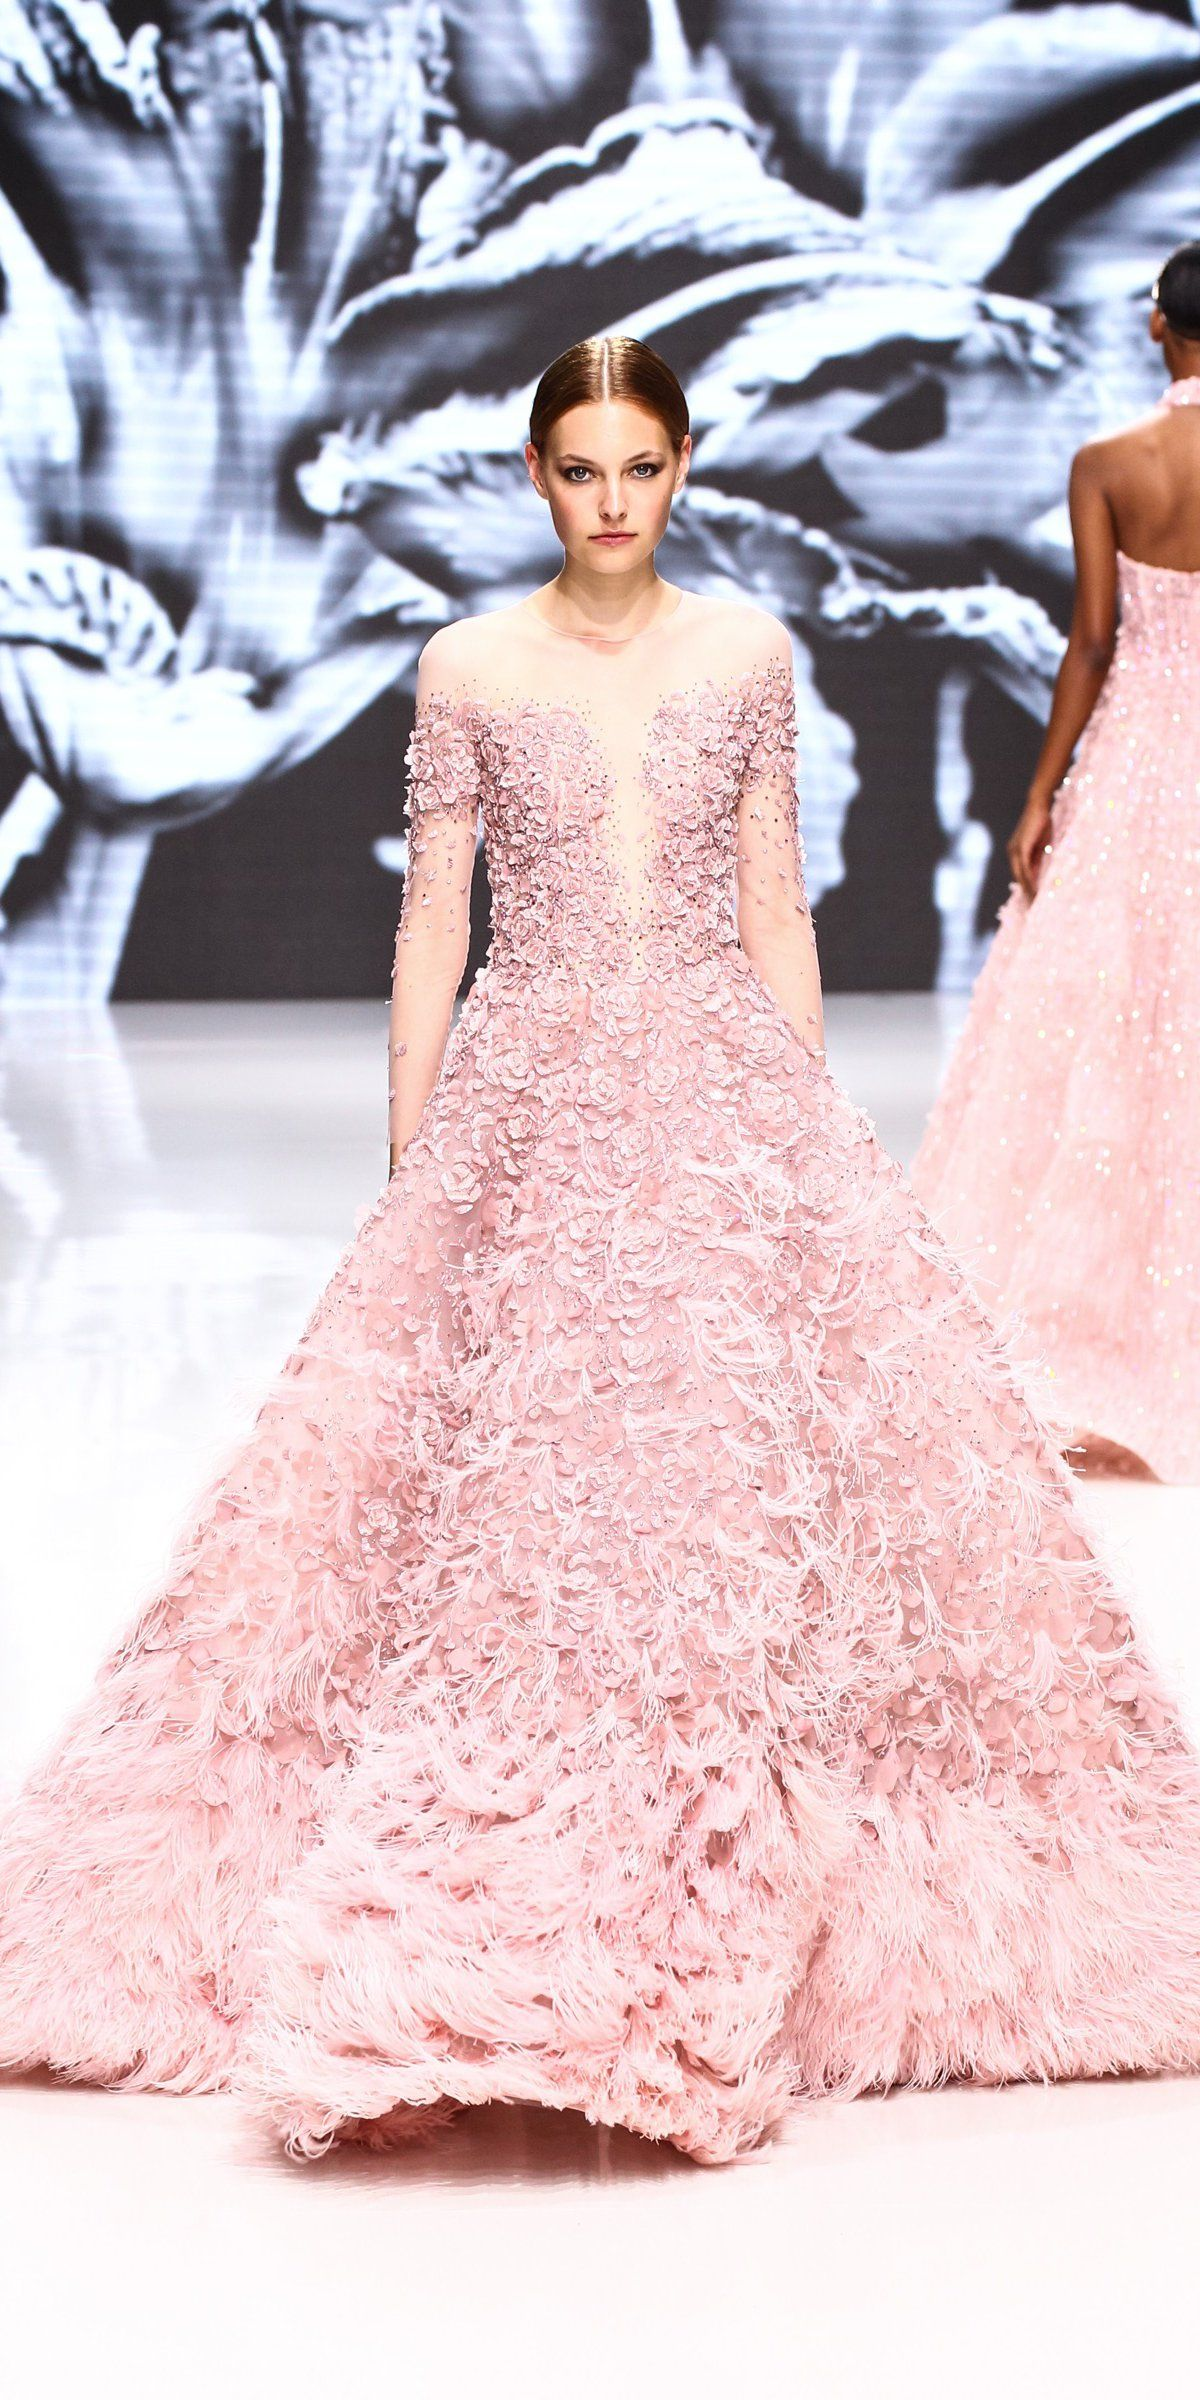 Pink snowflakes - 19 pink Haute Couture gowns this Winter   Michael ...